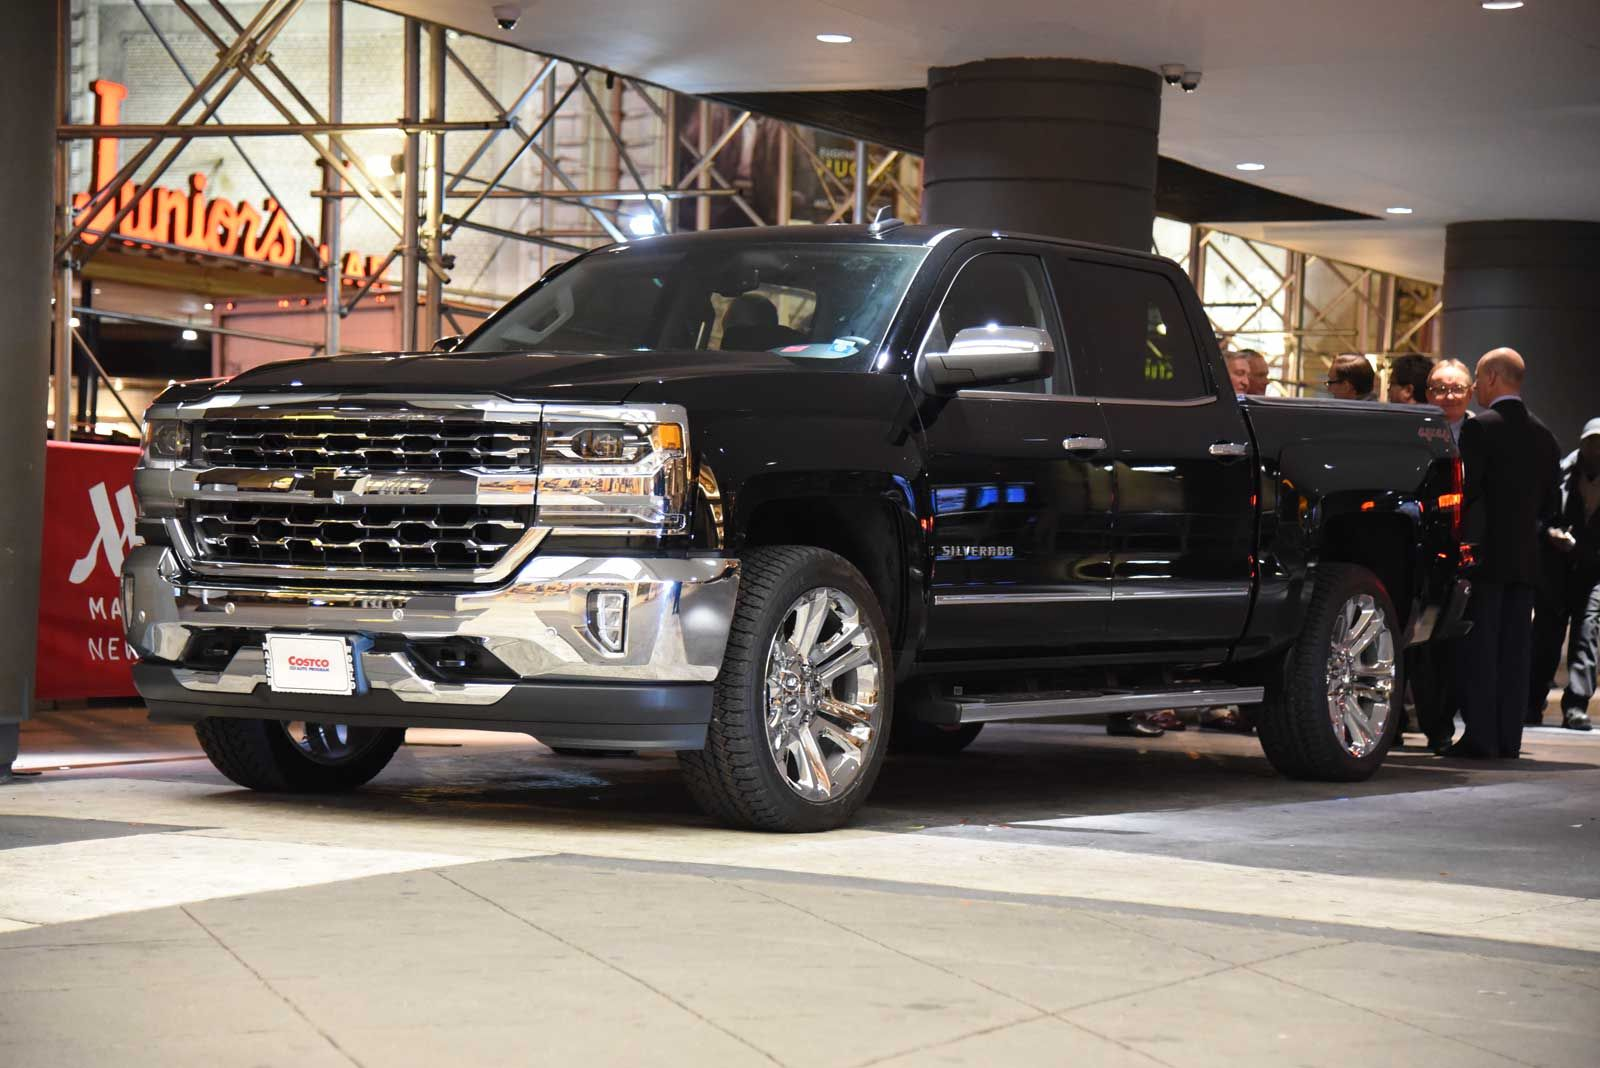 Membership warehouse costco has teamed up with chevrolet to introduce a special edition costco silverado pickup truck and it s a great deal